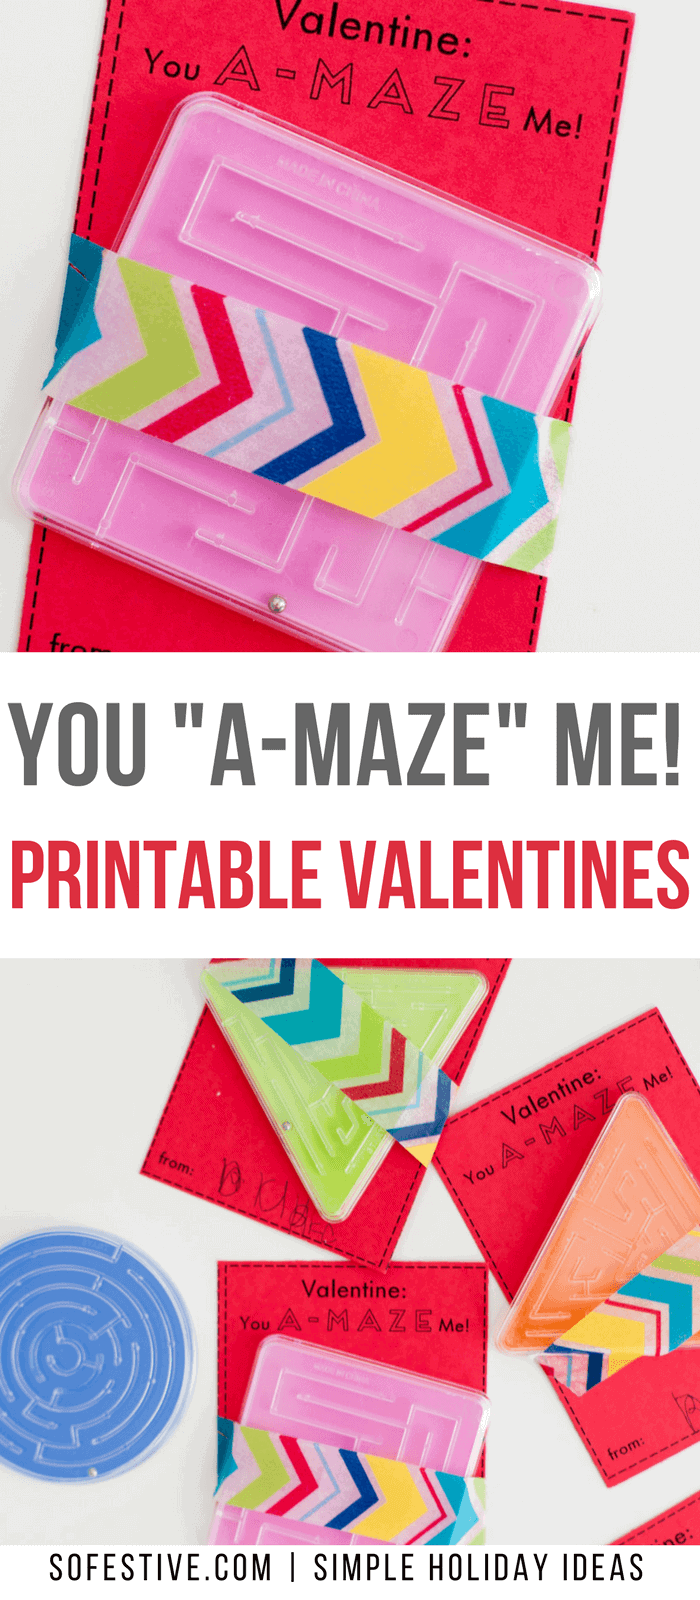 You A-maze Me -Printable-Valentines